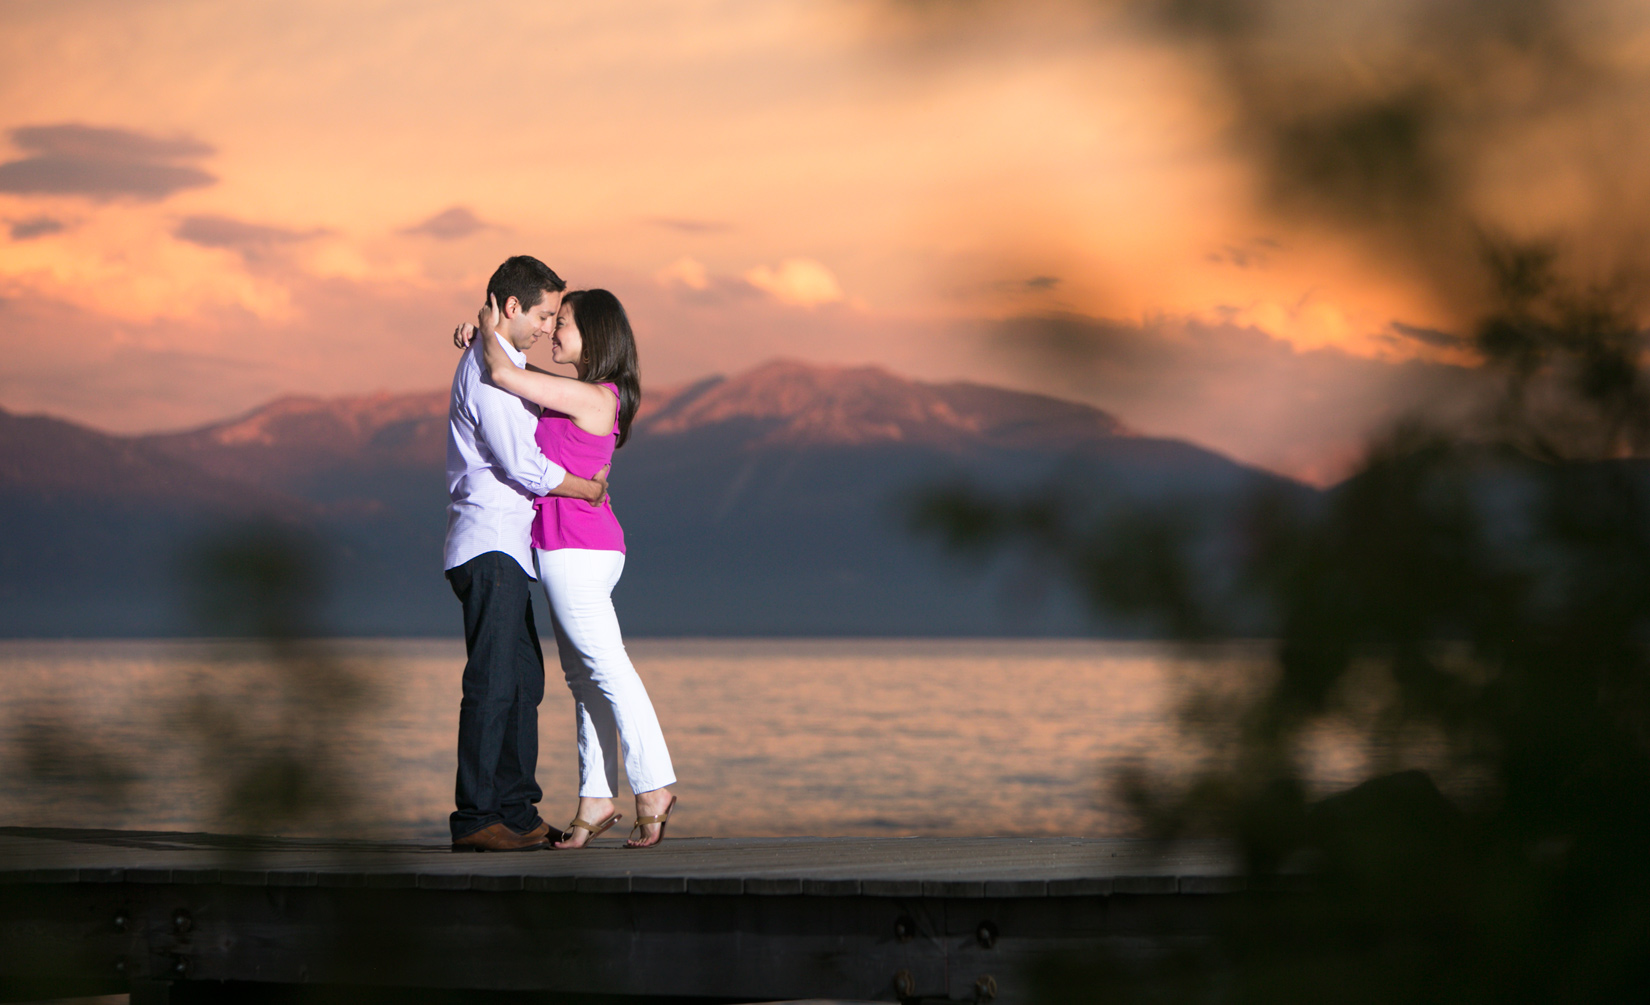 Tahoe-sunset-pier-couple